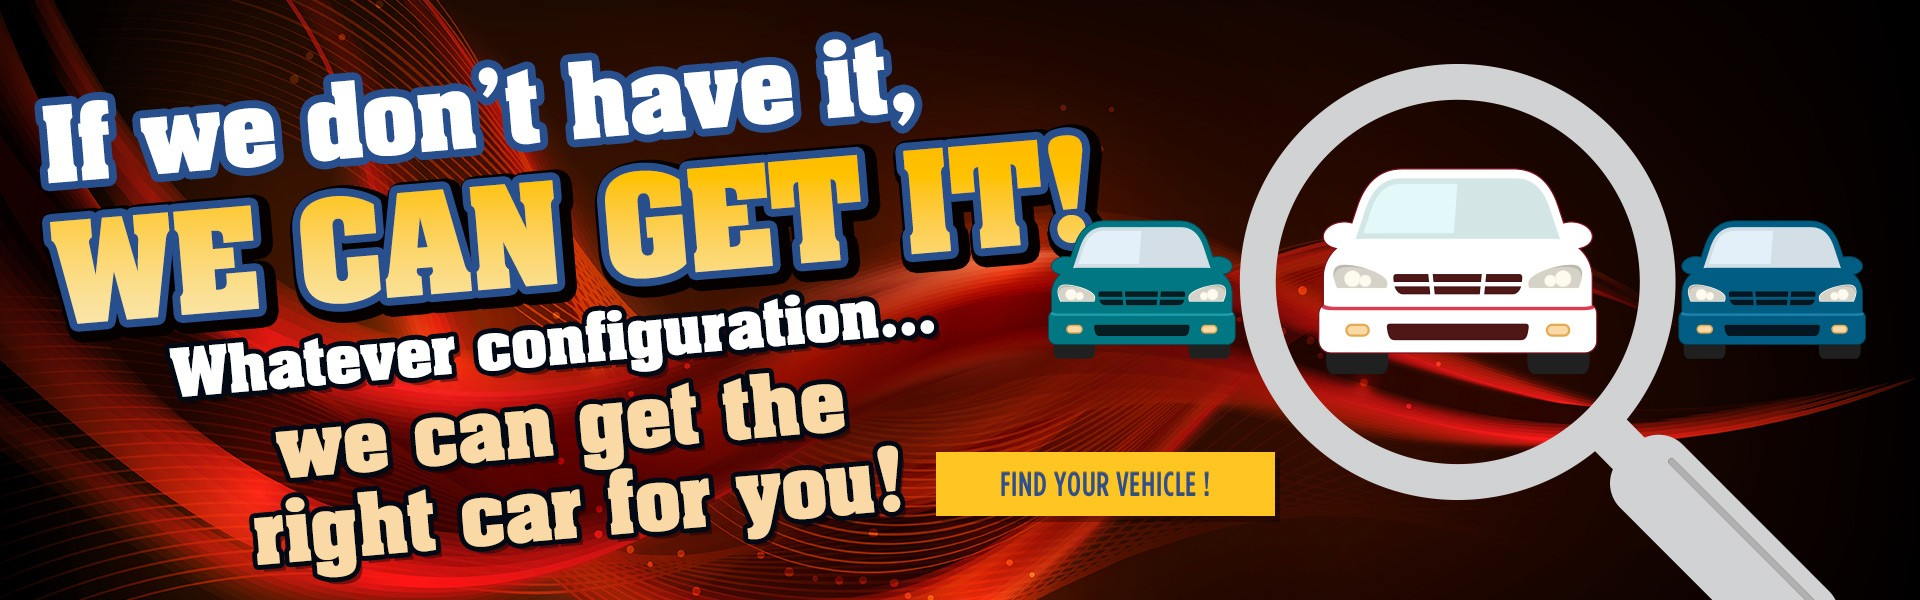 If we don't have it, We can get it. Whatever configuration...we can get the right car for you!